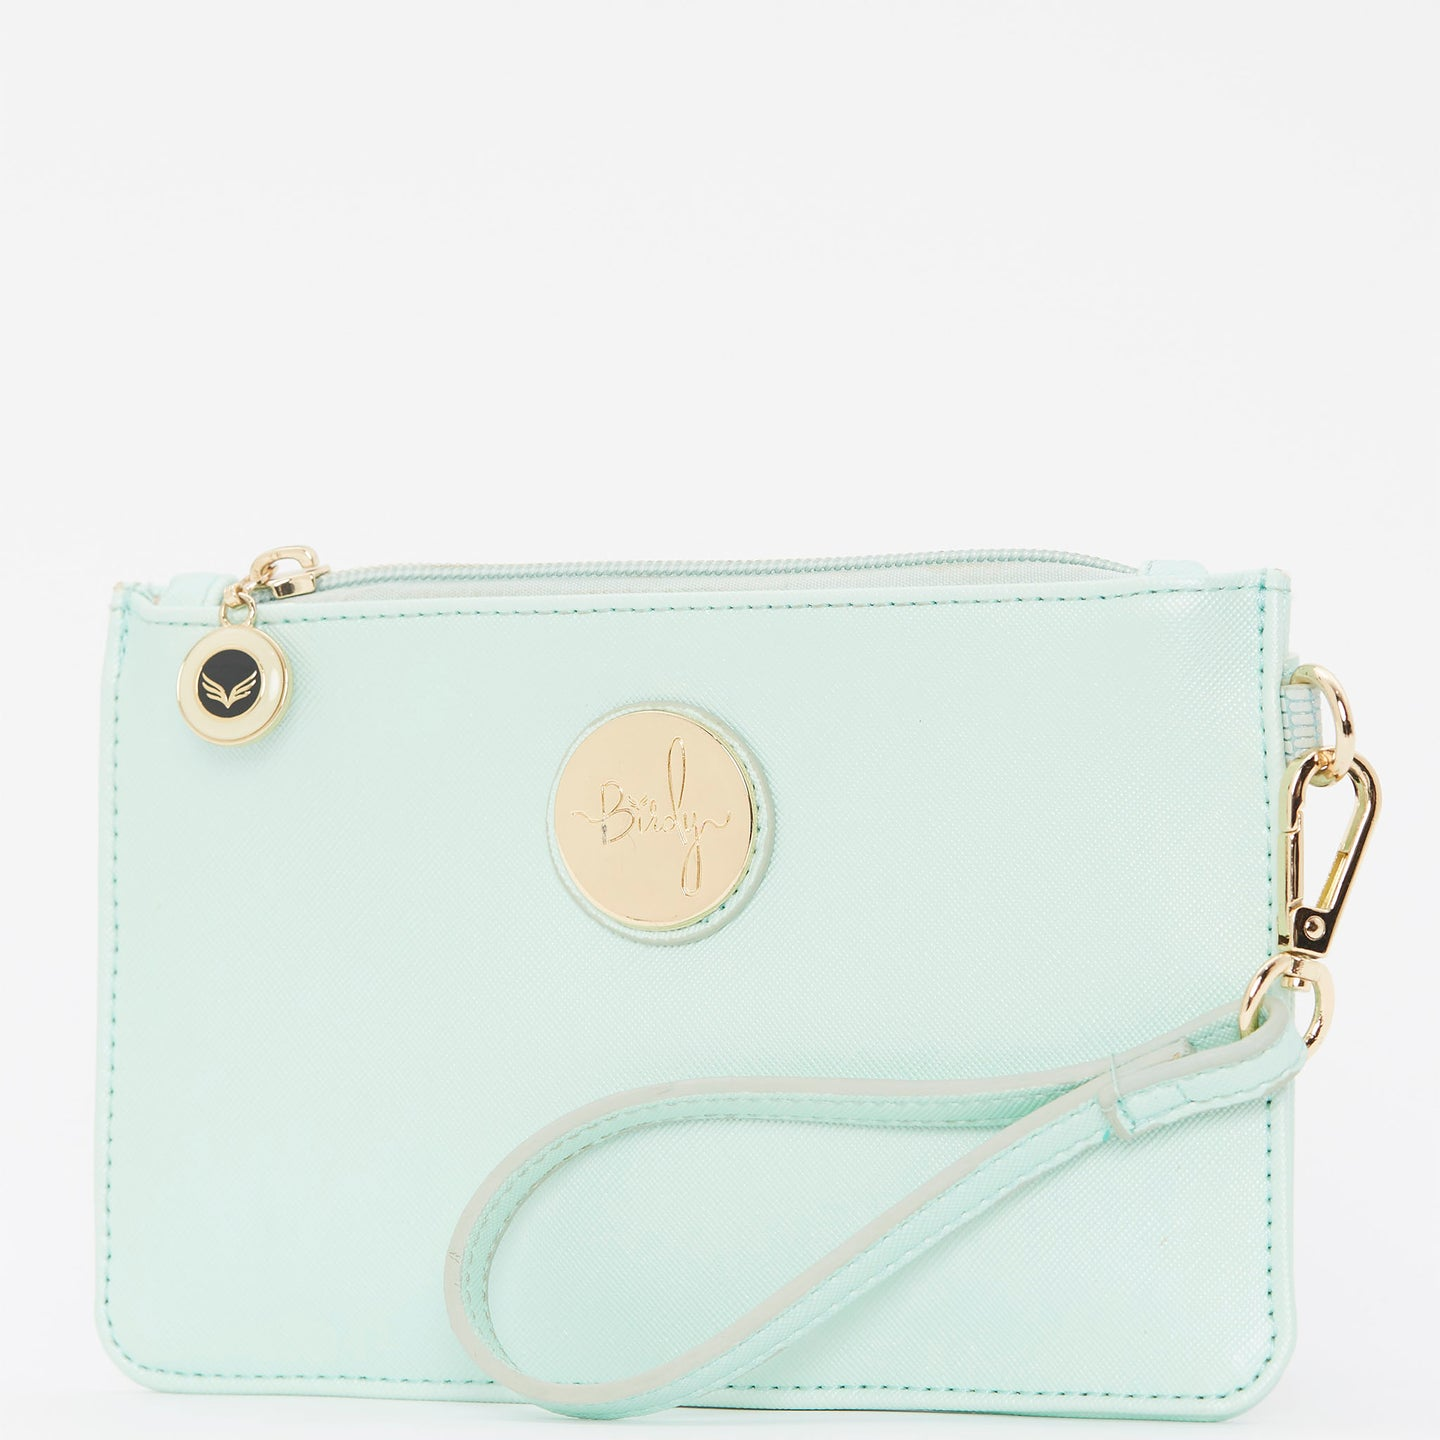 Birdy Wristlet Clutch | Mint • Gold